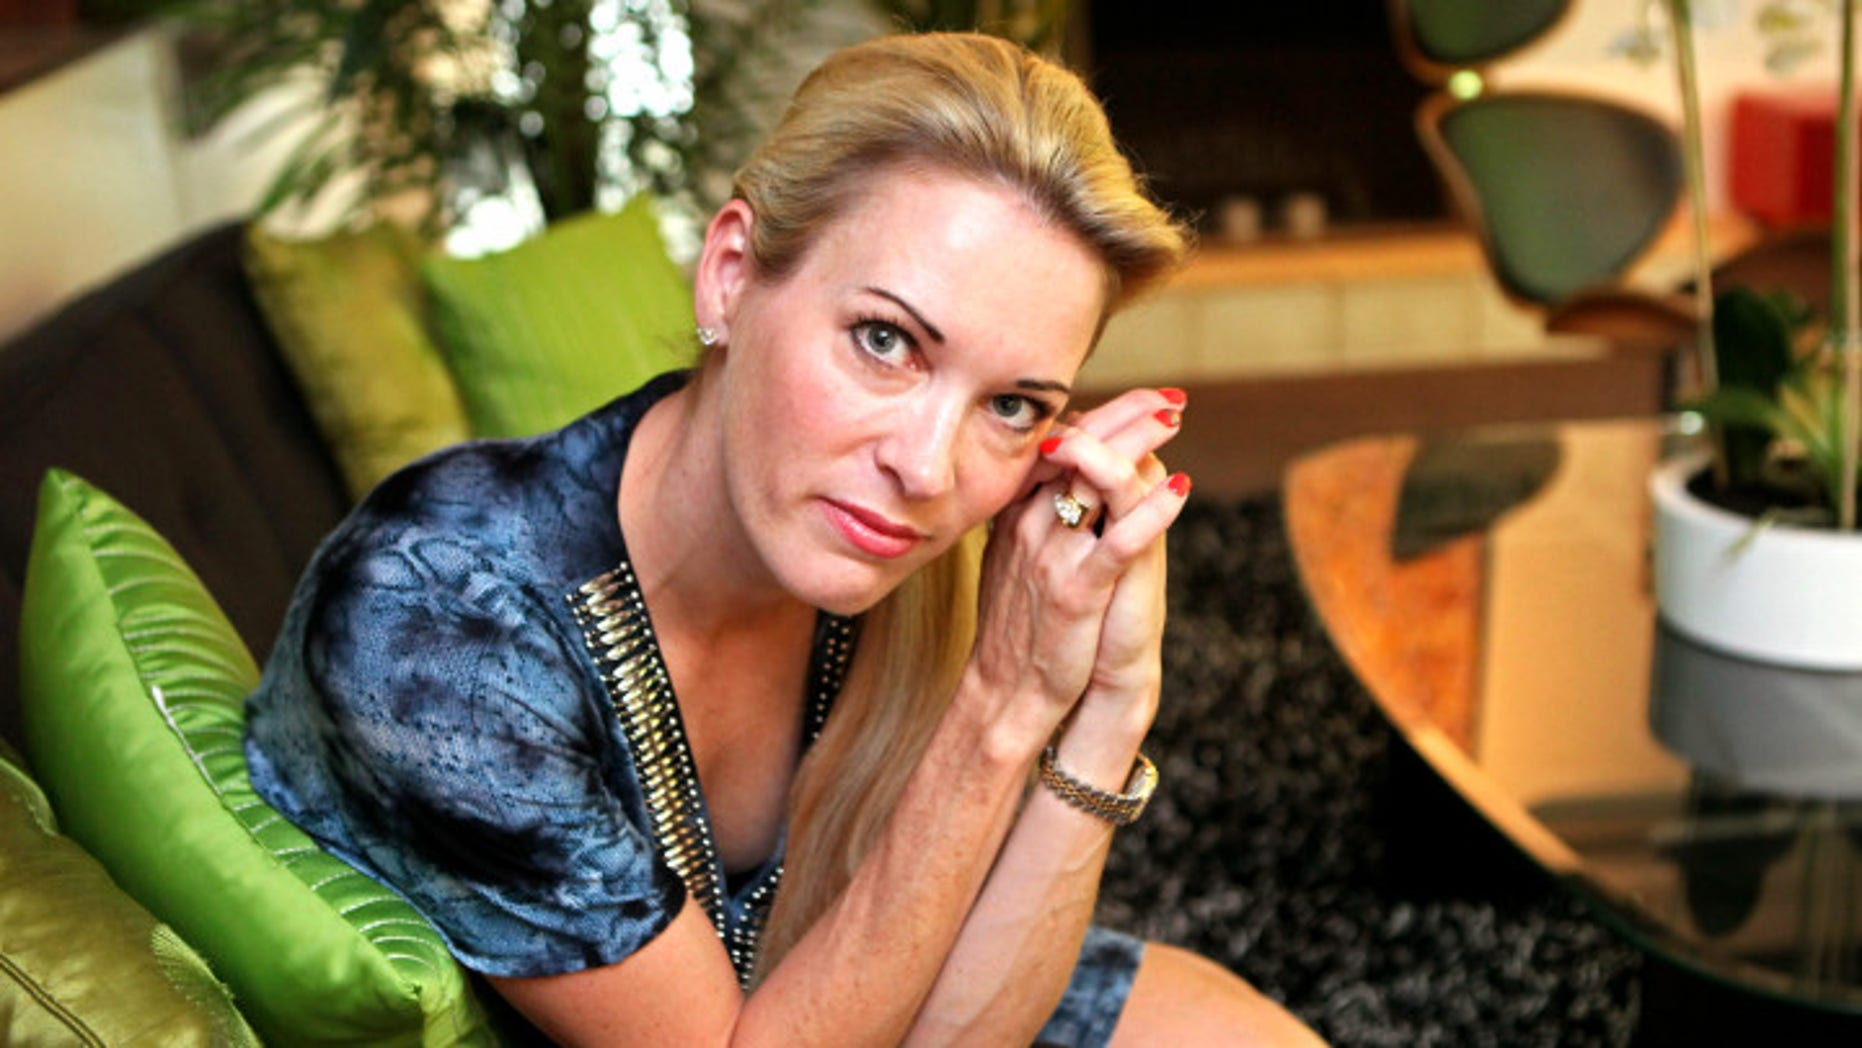 In this photo taken July 17, 2012  Suzy Favor Hamilton poses for a portrait at her home in Shorewood Hills a suburb of Madison, Wis. The three-time Olympian has admitted leading a double life as an escort. She apologized Thursday, Dec. 20, 2012, after a report by The Smoking Gun website said she had been working as a prostitute in Las Vegas. (AP Photo/Milwaukee Journal-Sentinel, Michael Sears)